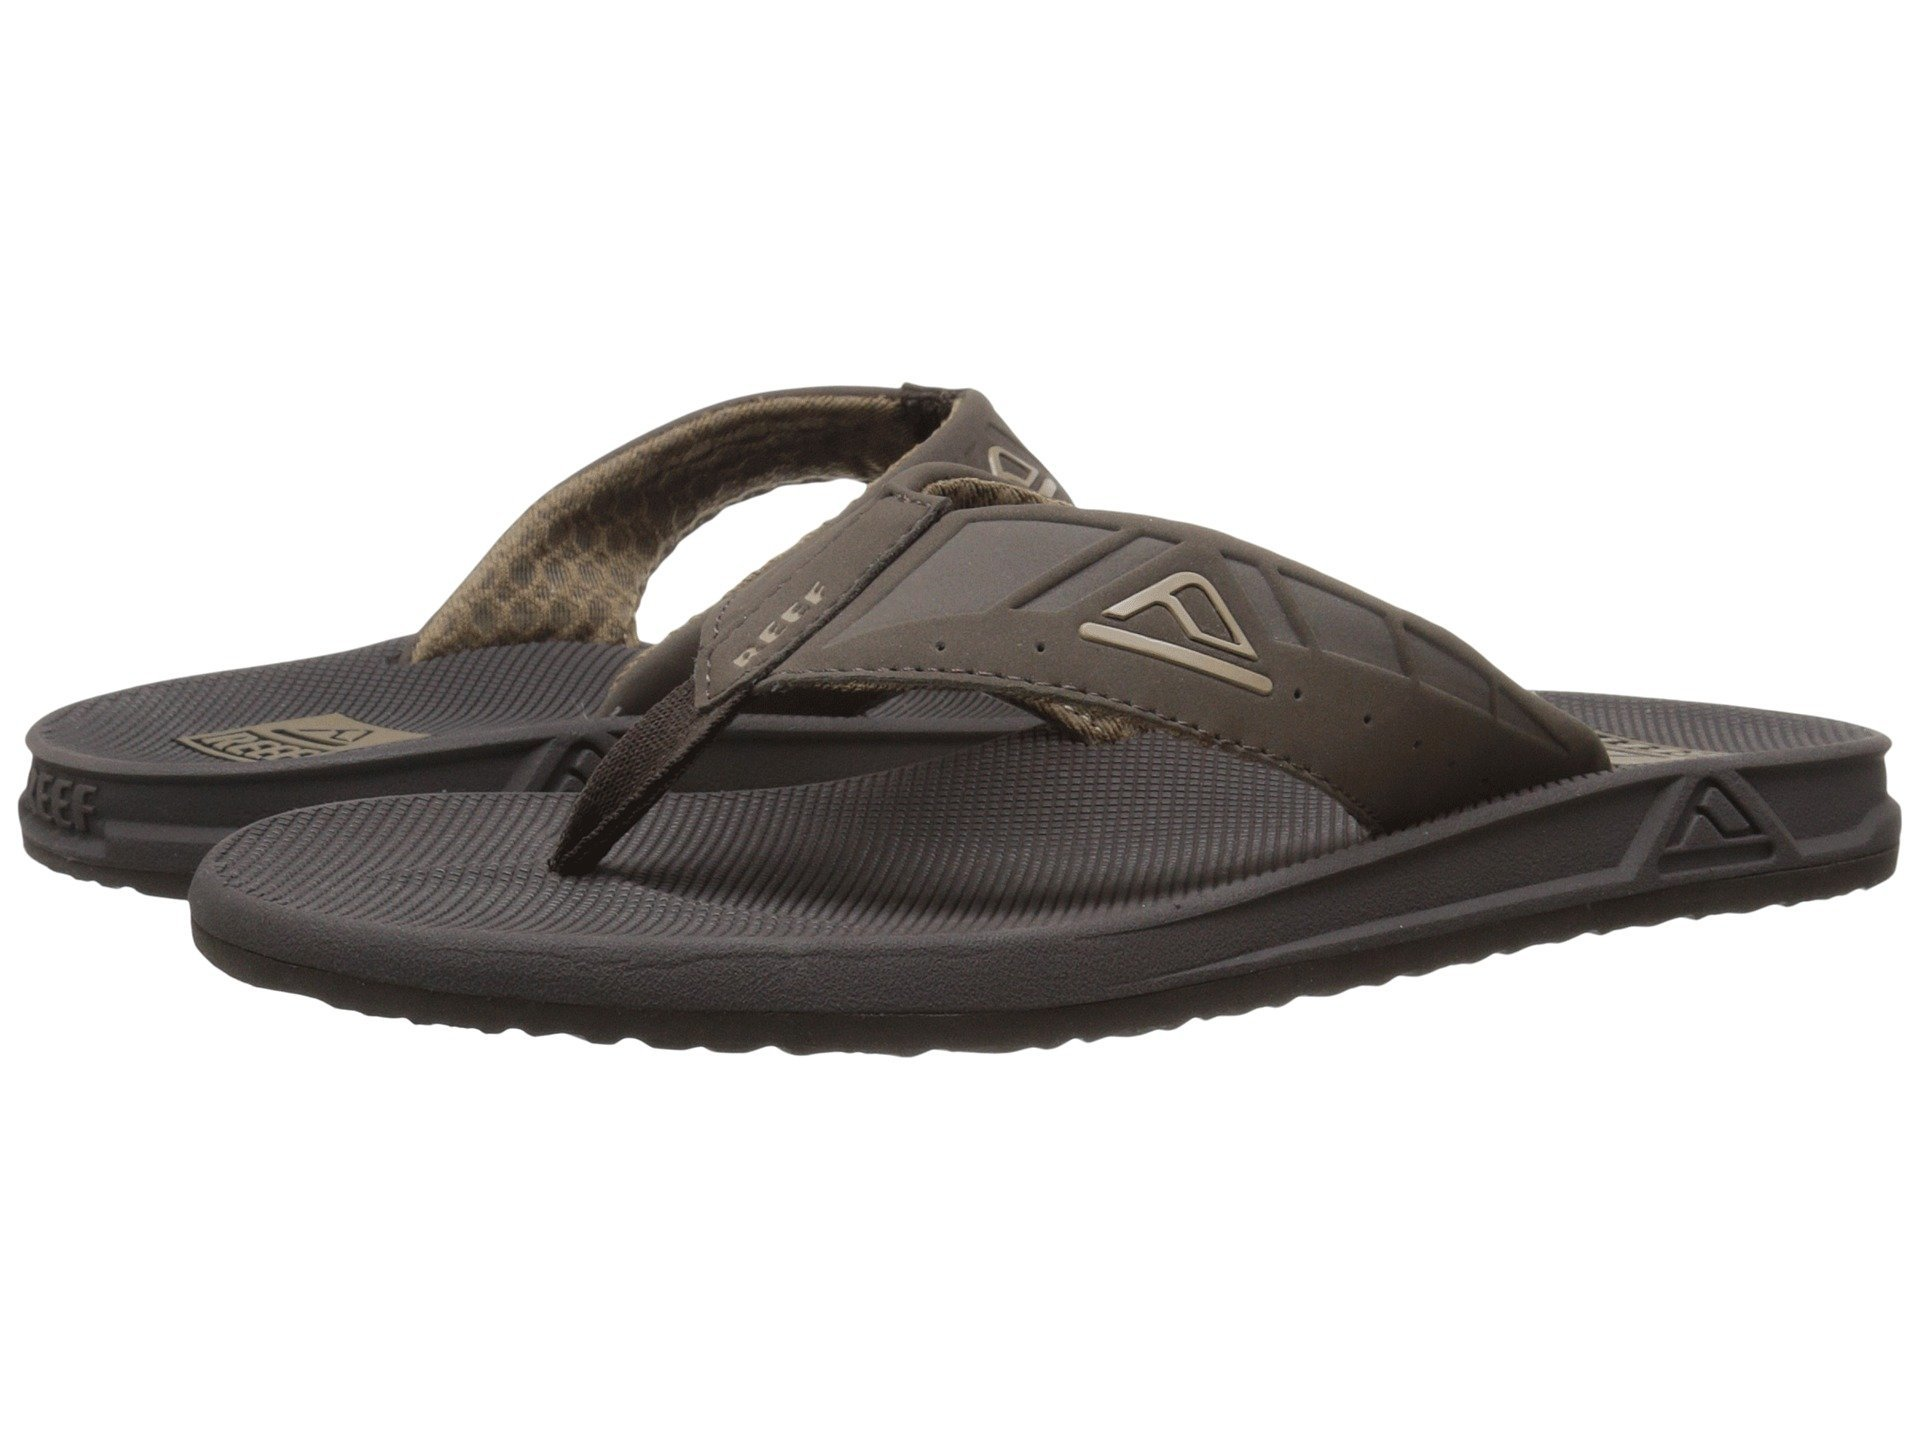 Reef Mens Phantom Sandals Brown/Brown Size 11